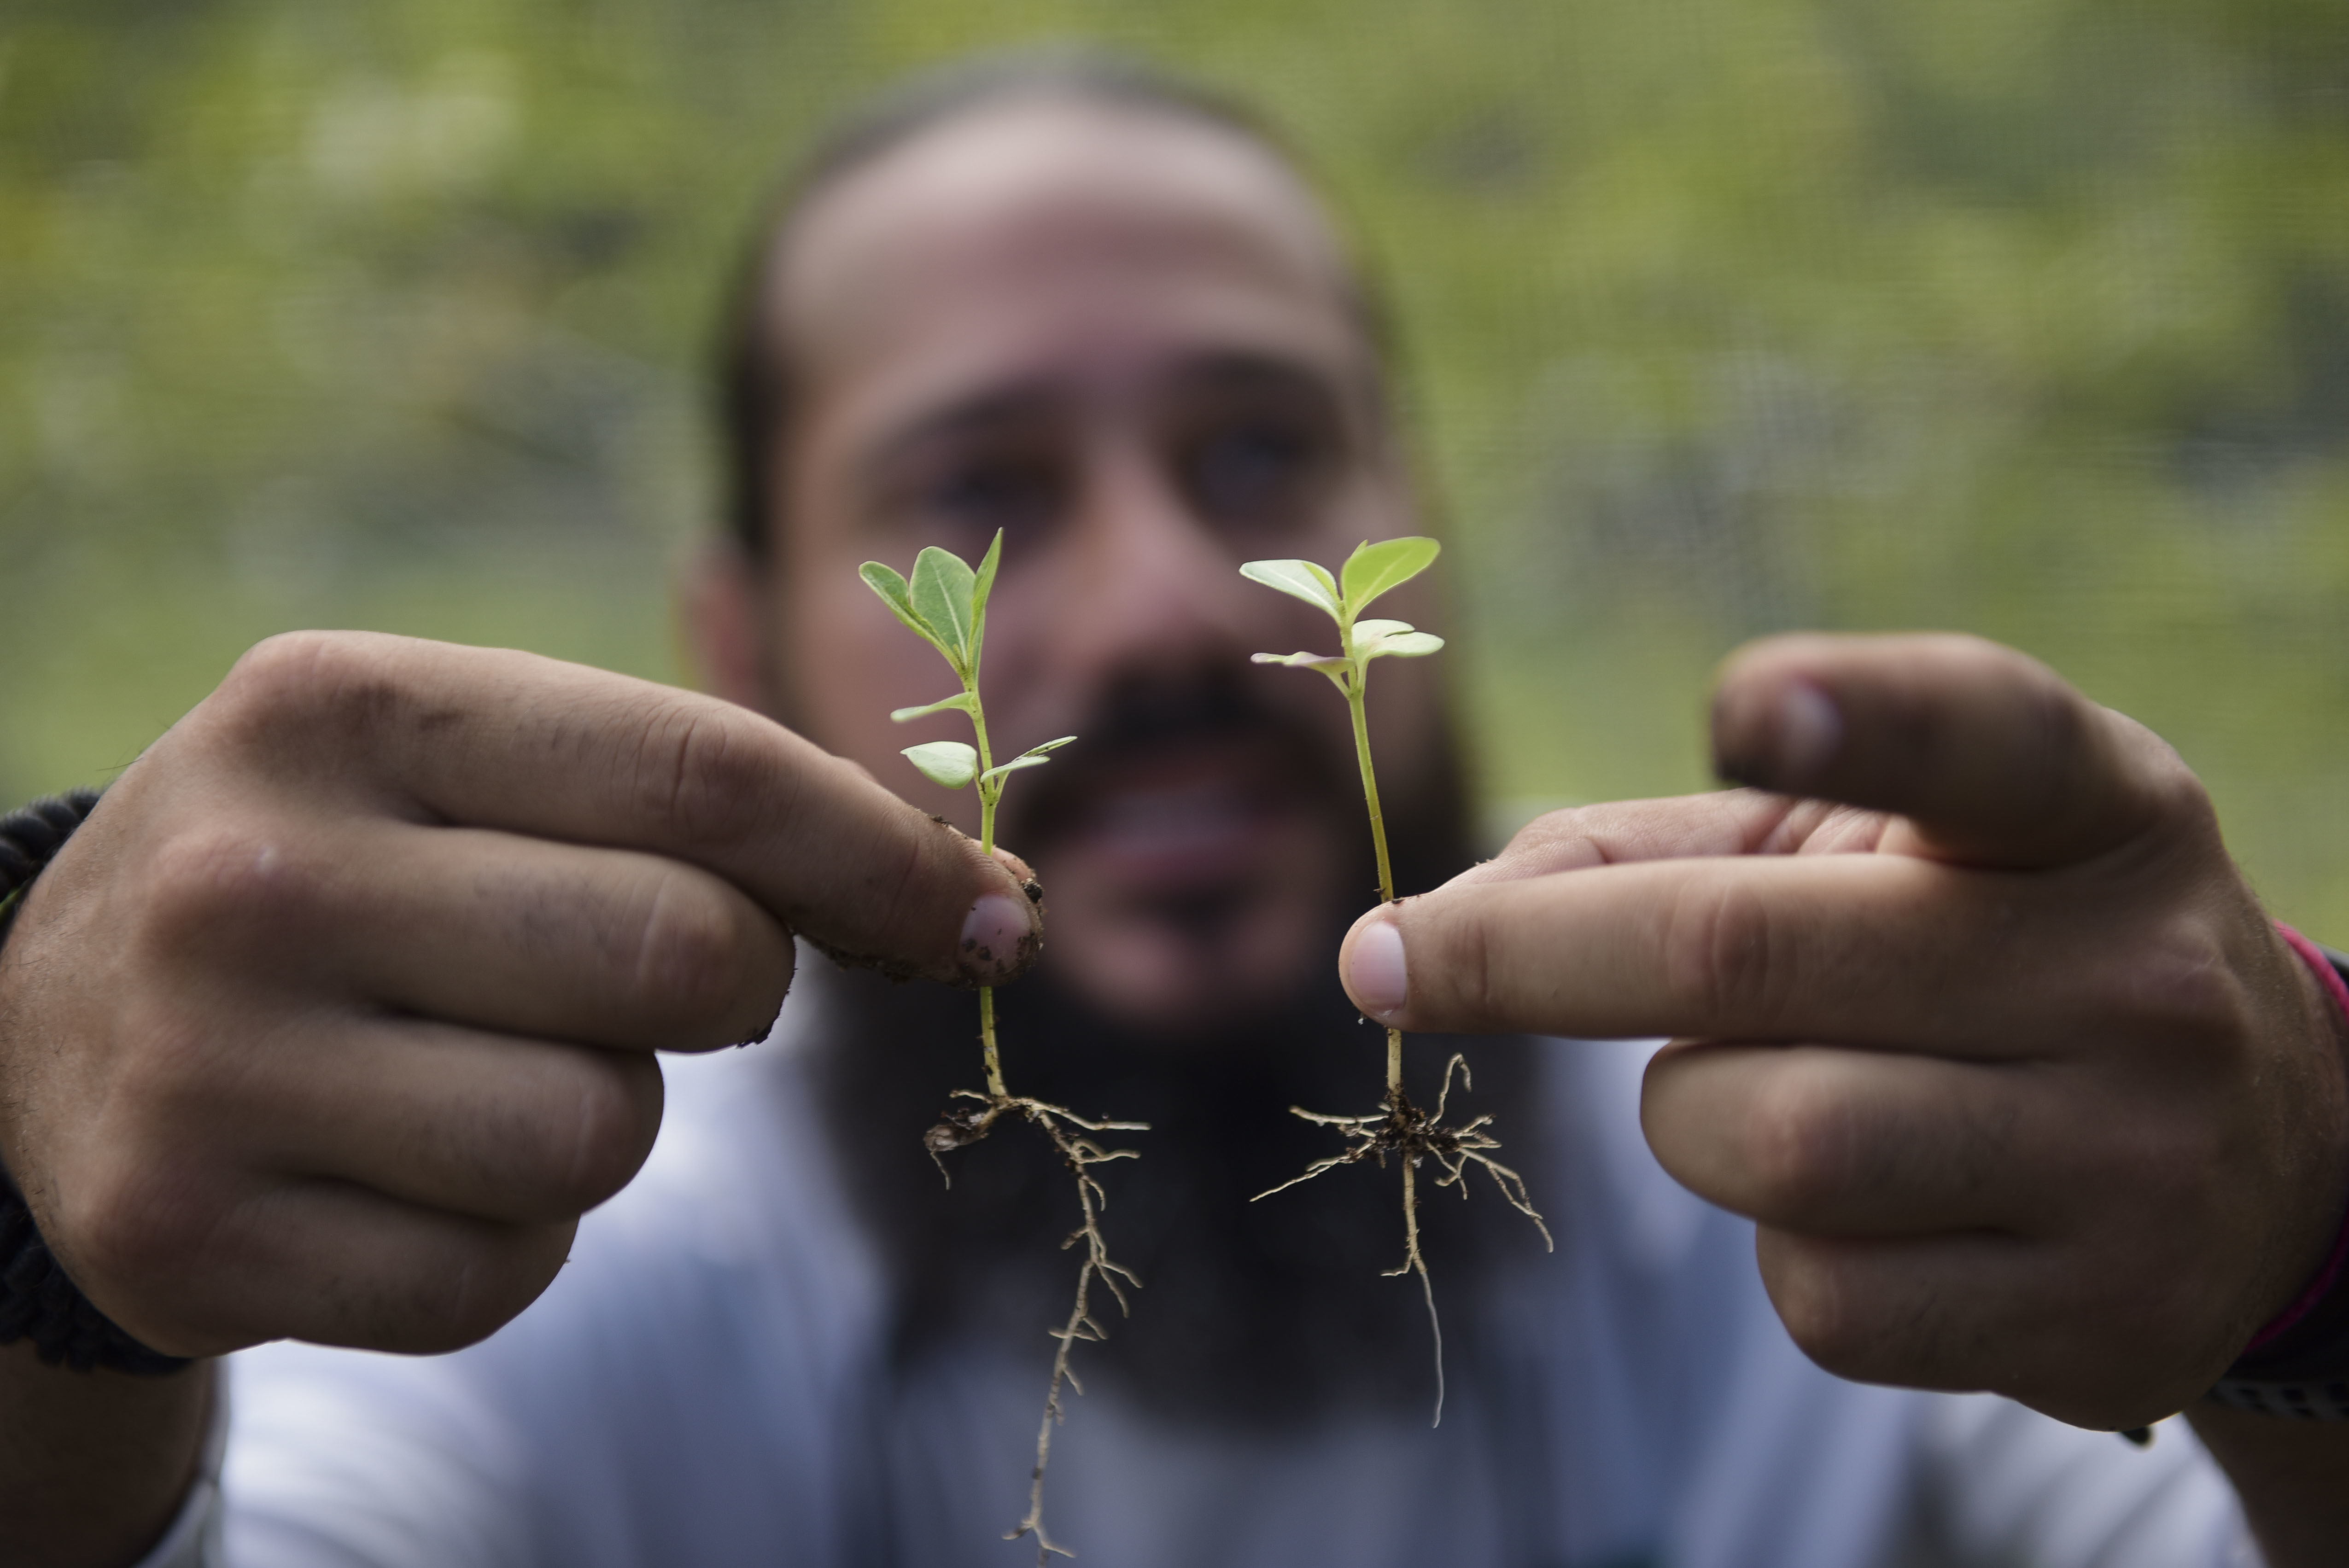 Manuel Sepulveda, a nursery management coordinator with Para la Naturaleza, a nonprofit organization, holds a couple of native oak seedlings, March 2, 2018, in one of its nurseries in the Rio Piedras Botanical Garden, in San Juan, Puerto Rico.